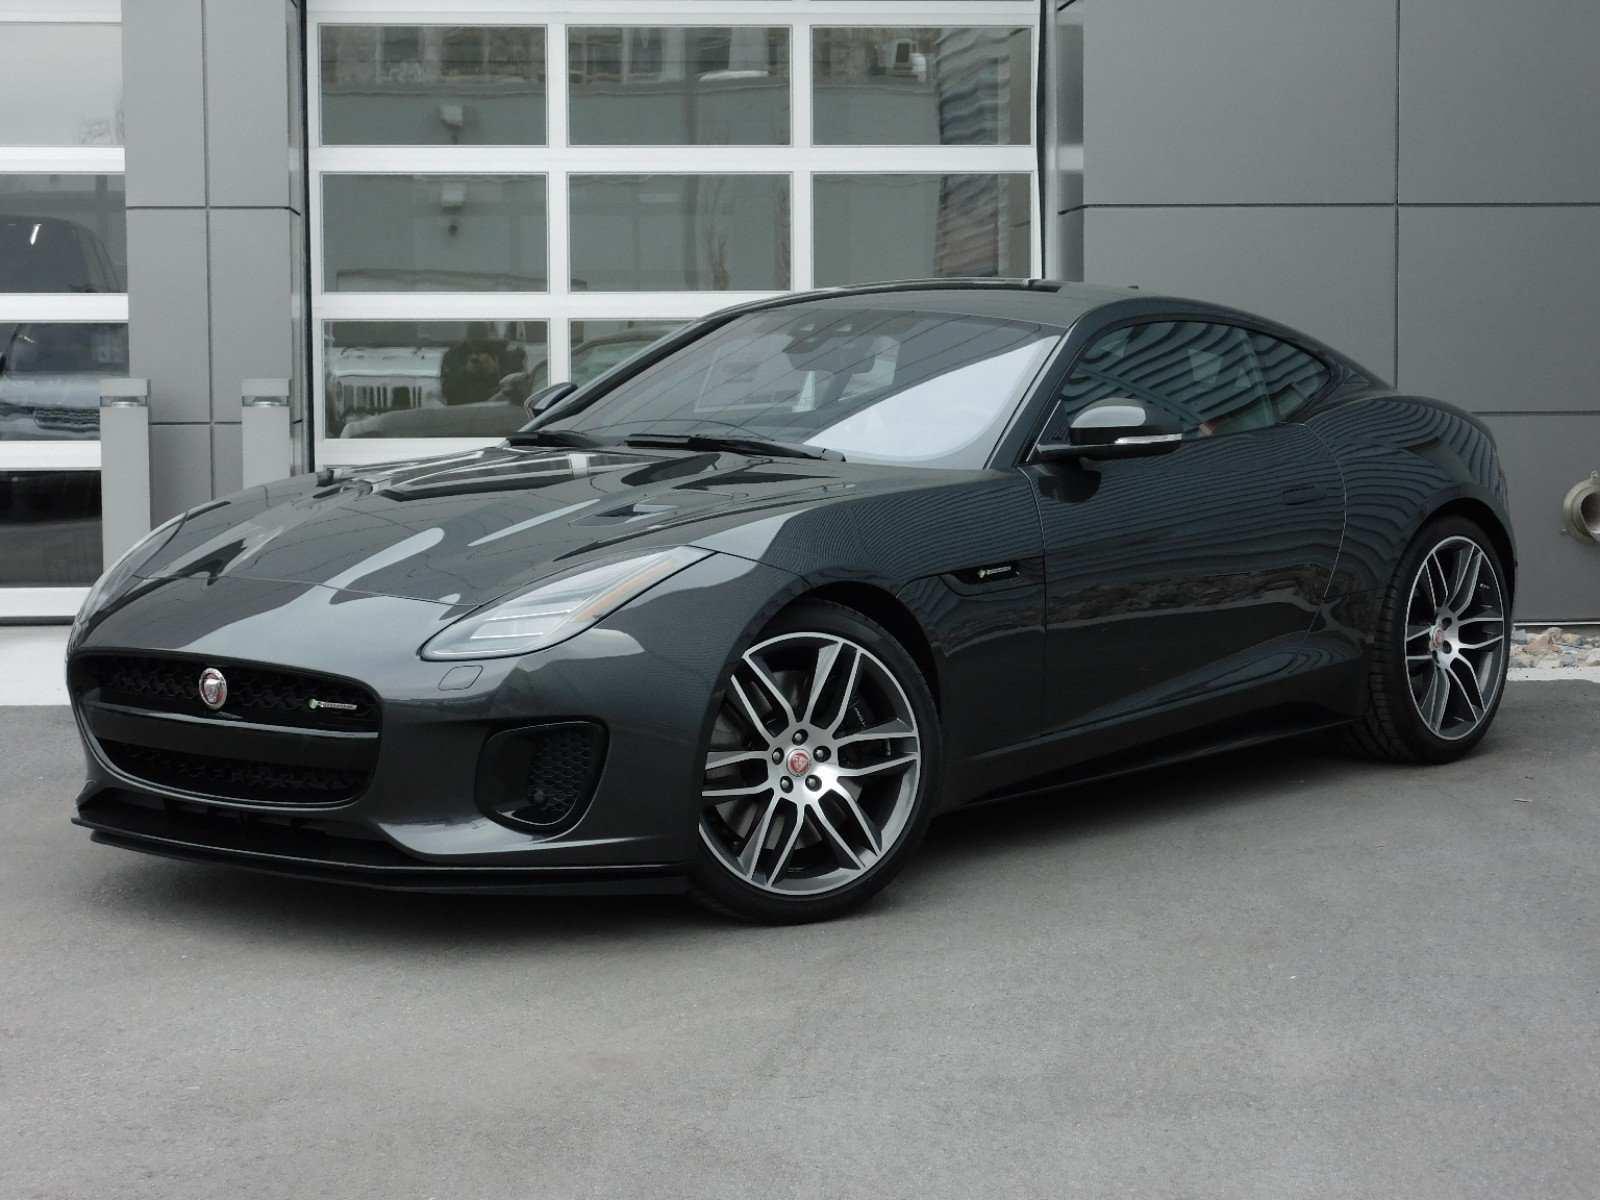 99 All New Jaguar F Type 2020 Research New for Jaguar F Type 2020